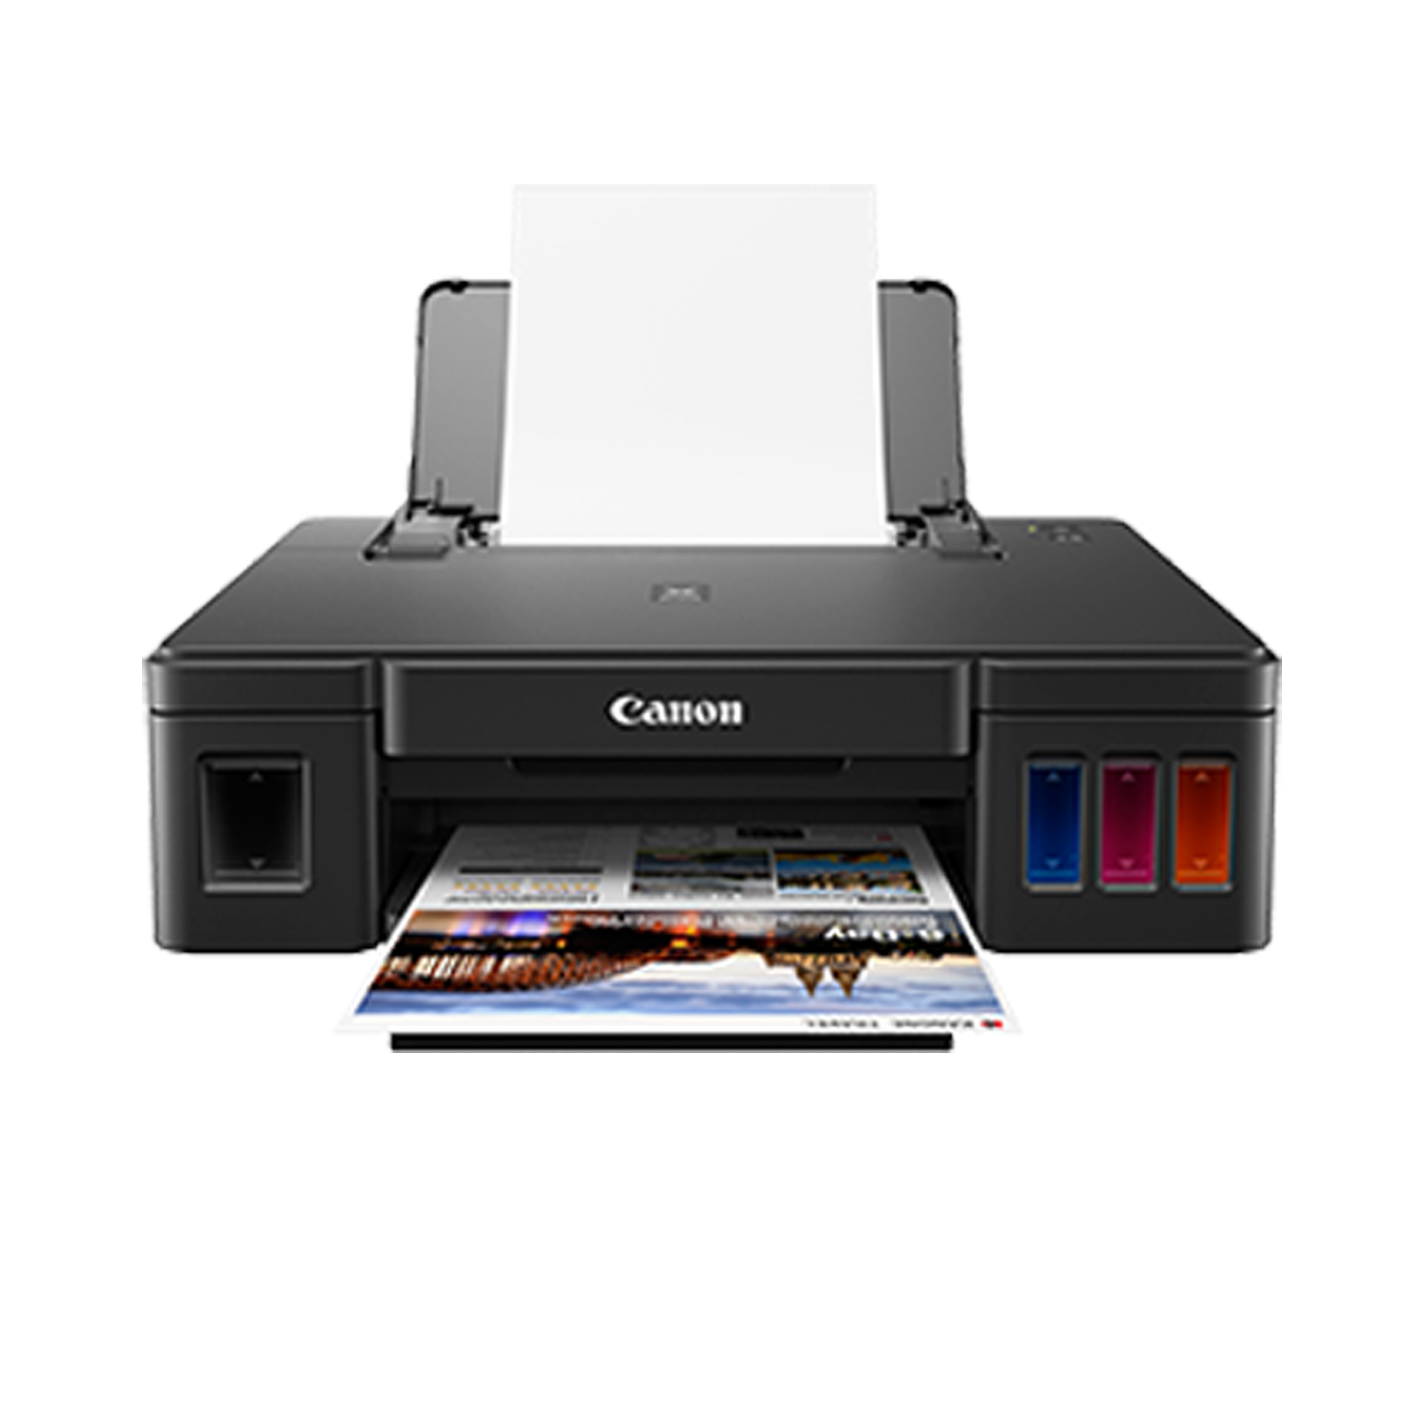 canon-pixma-g1010-ink-tank-color-printer